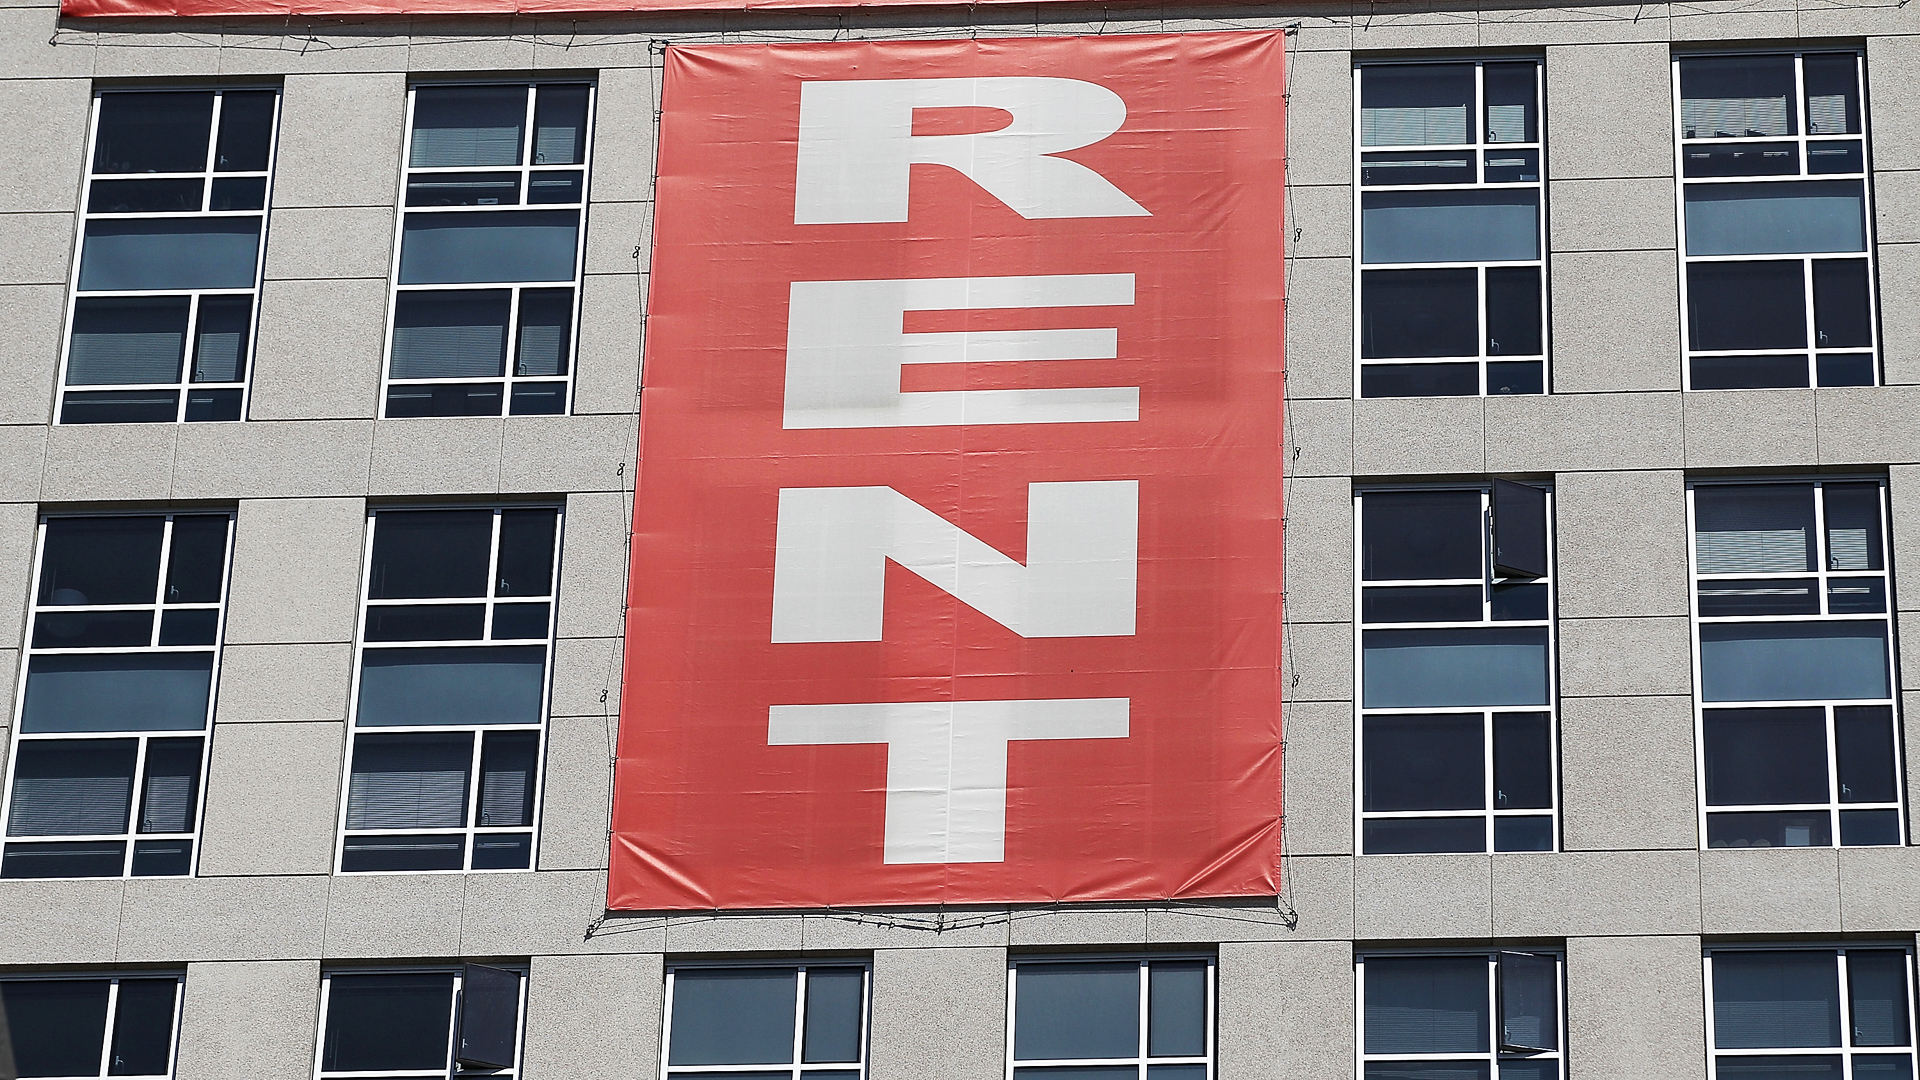 """A large """"rent"""" banner is posted on the side of an apartment building on June 15, 2012 in San Francisco, California. (Credit: Justin Sullivan/Getty Images)"""